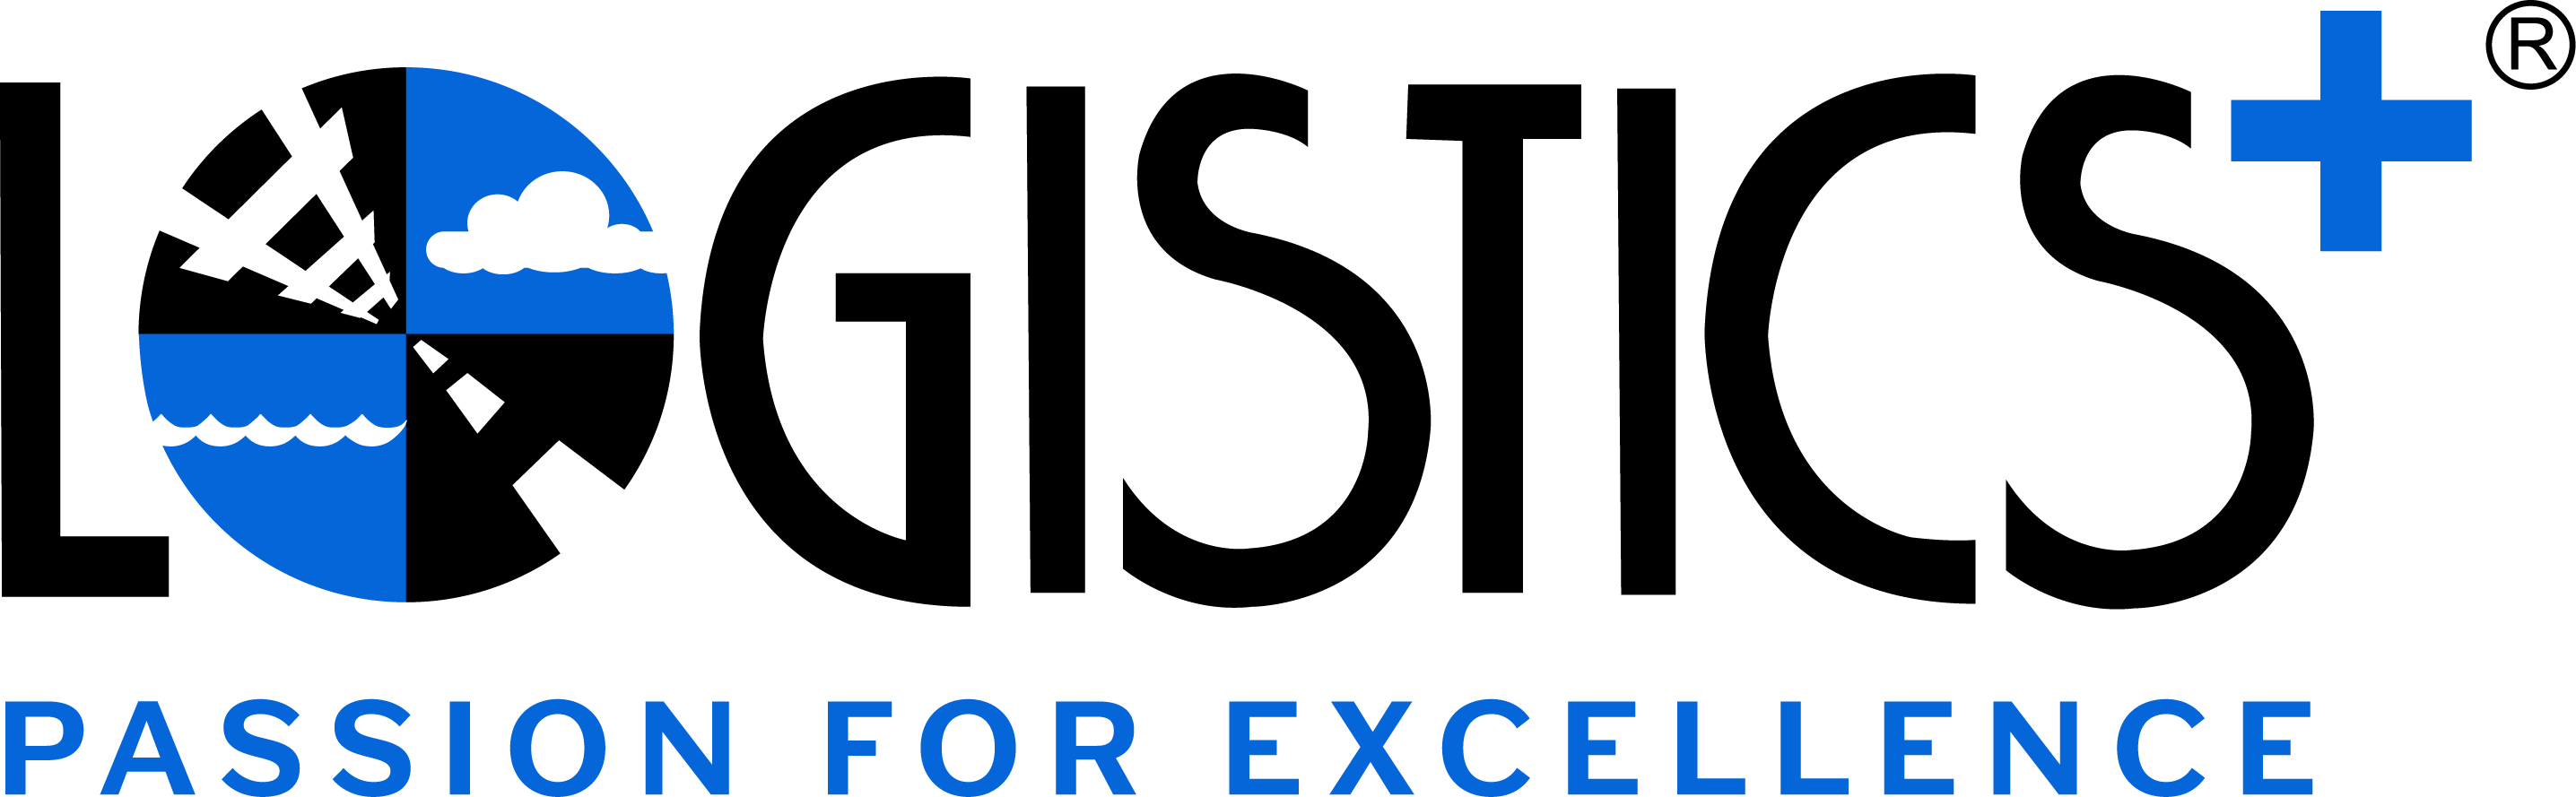 Logistics Plus Logo - slogan